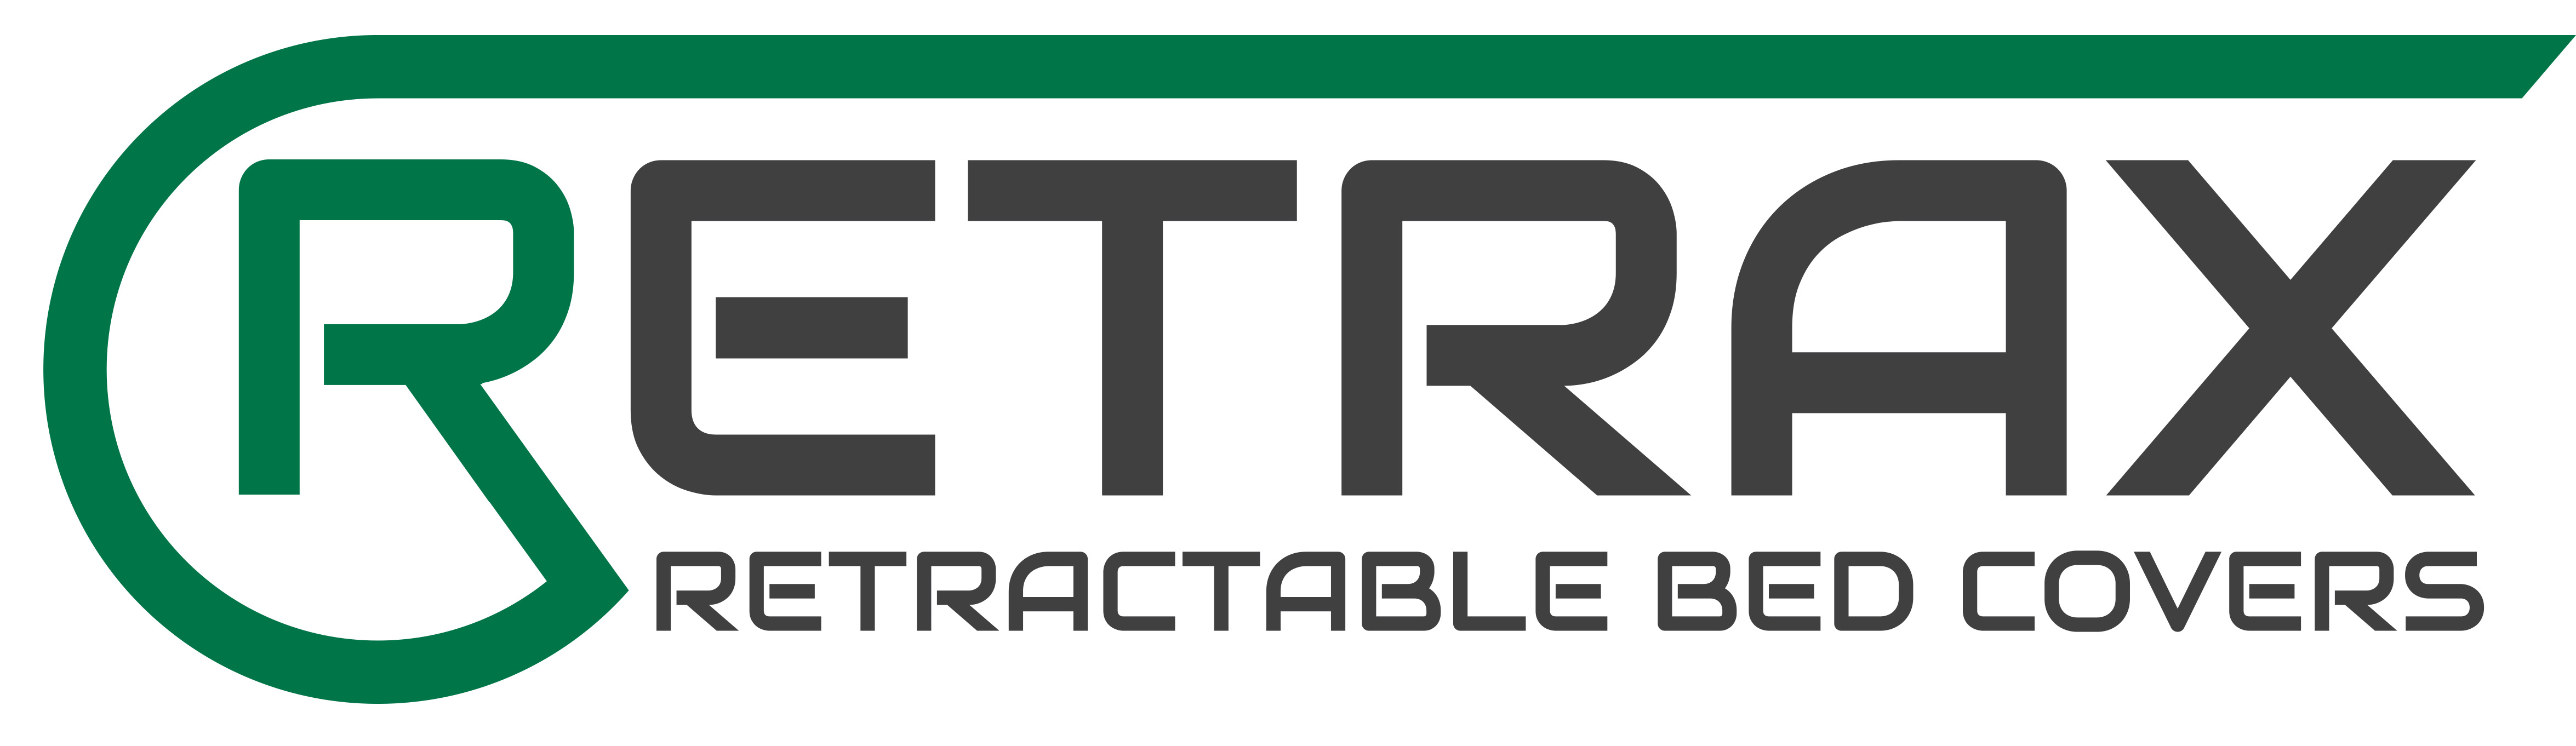 retrax-cover-logo.jpg